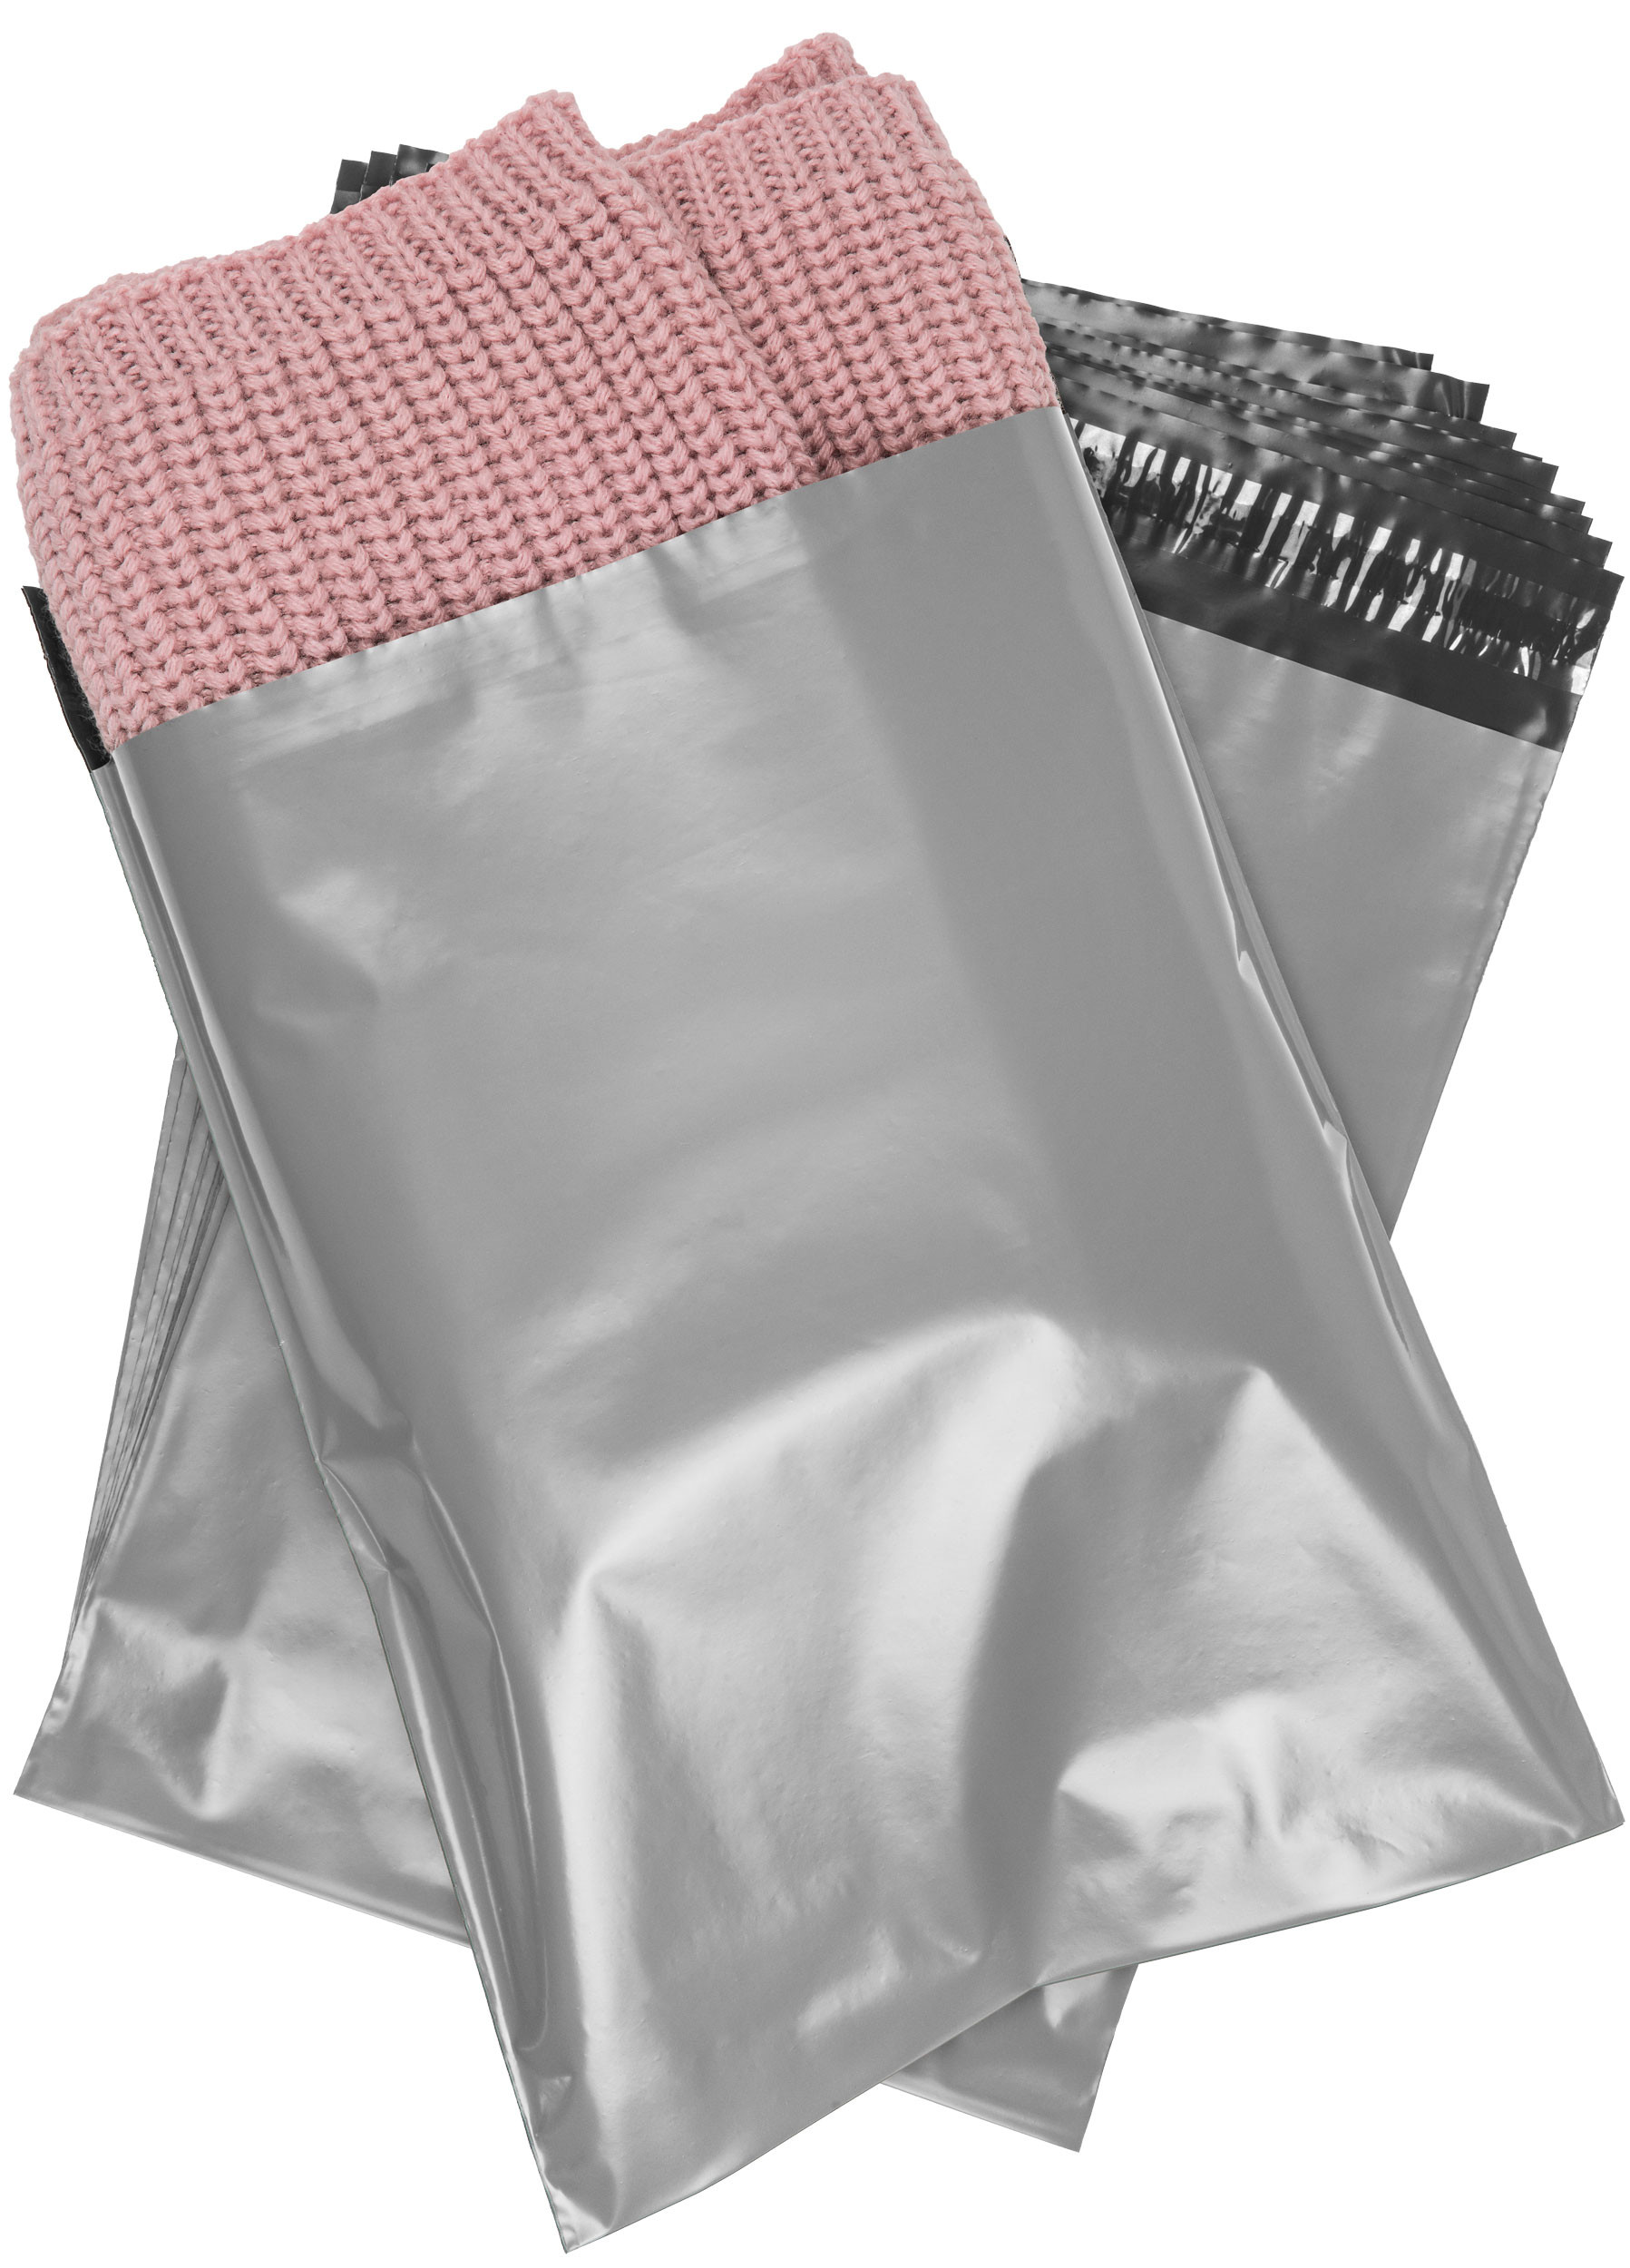 1500 - #4 - 10x13 Poly Mailers Envelopes Self Sealing Bags - 2.4 Mil